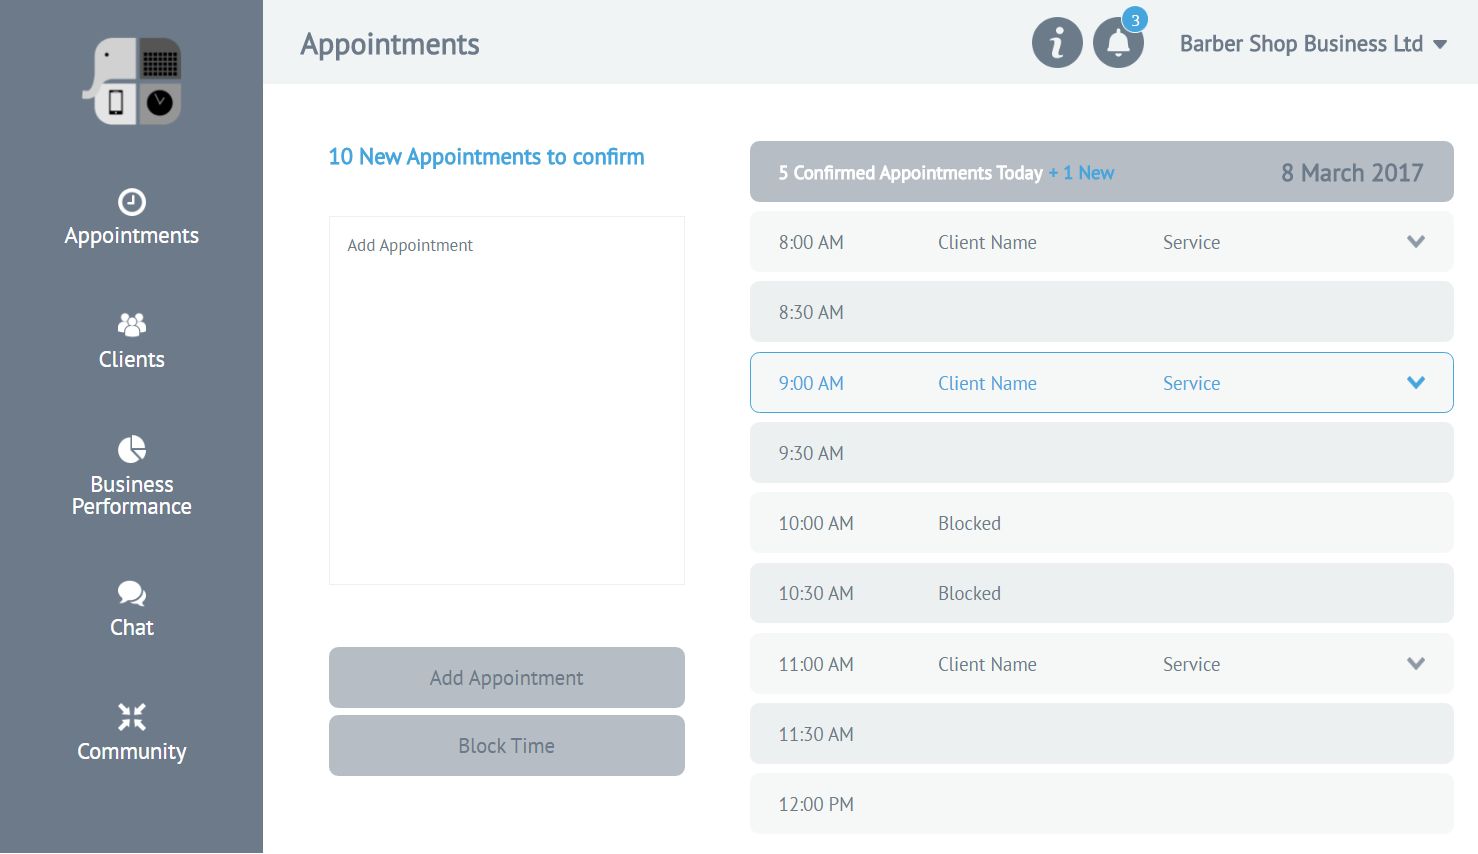 appointments-add-appointment